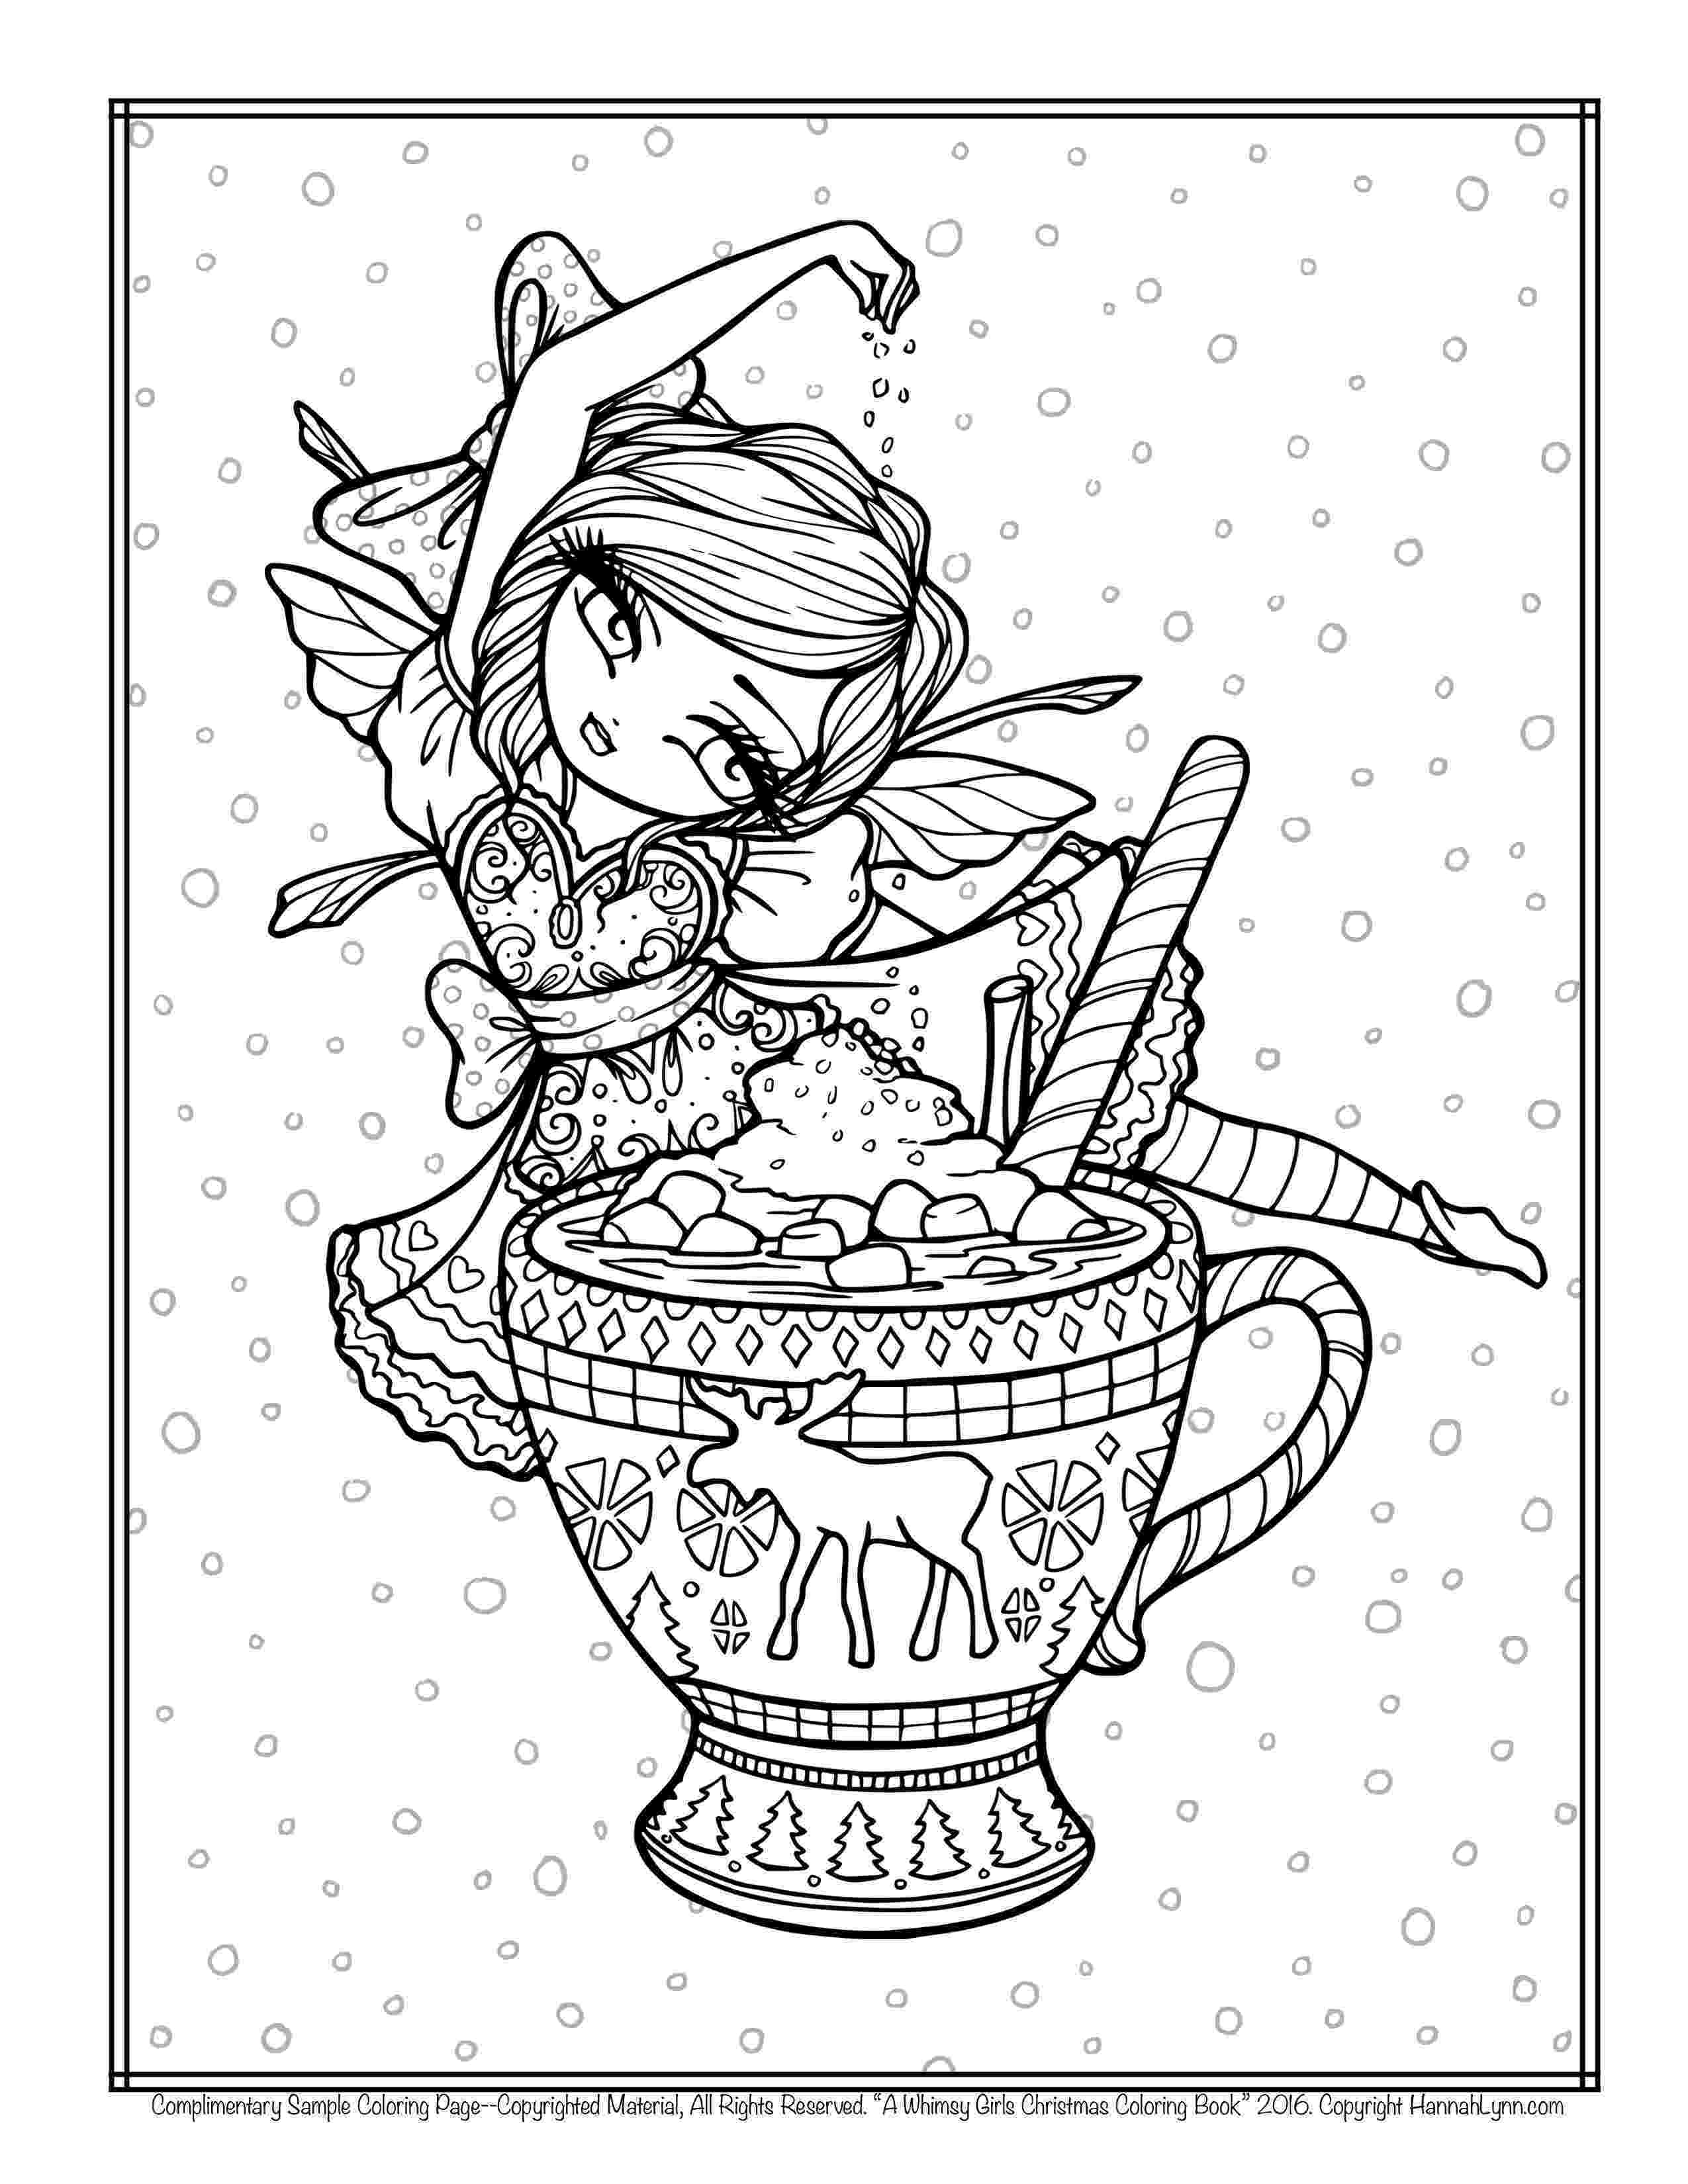 hot girl coloring pages interactive magazine sexy girl coloring pages girl hot coloring pages